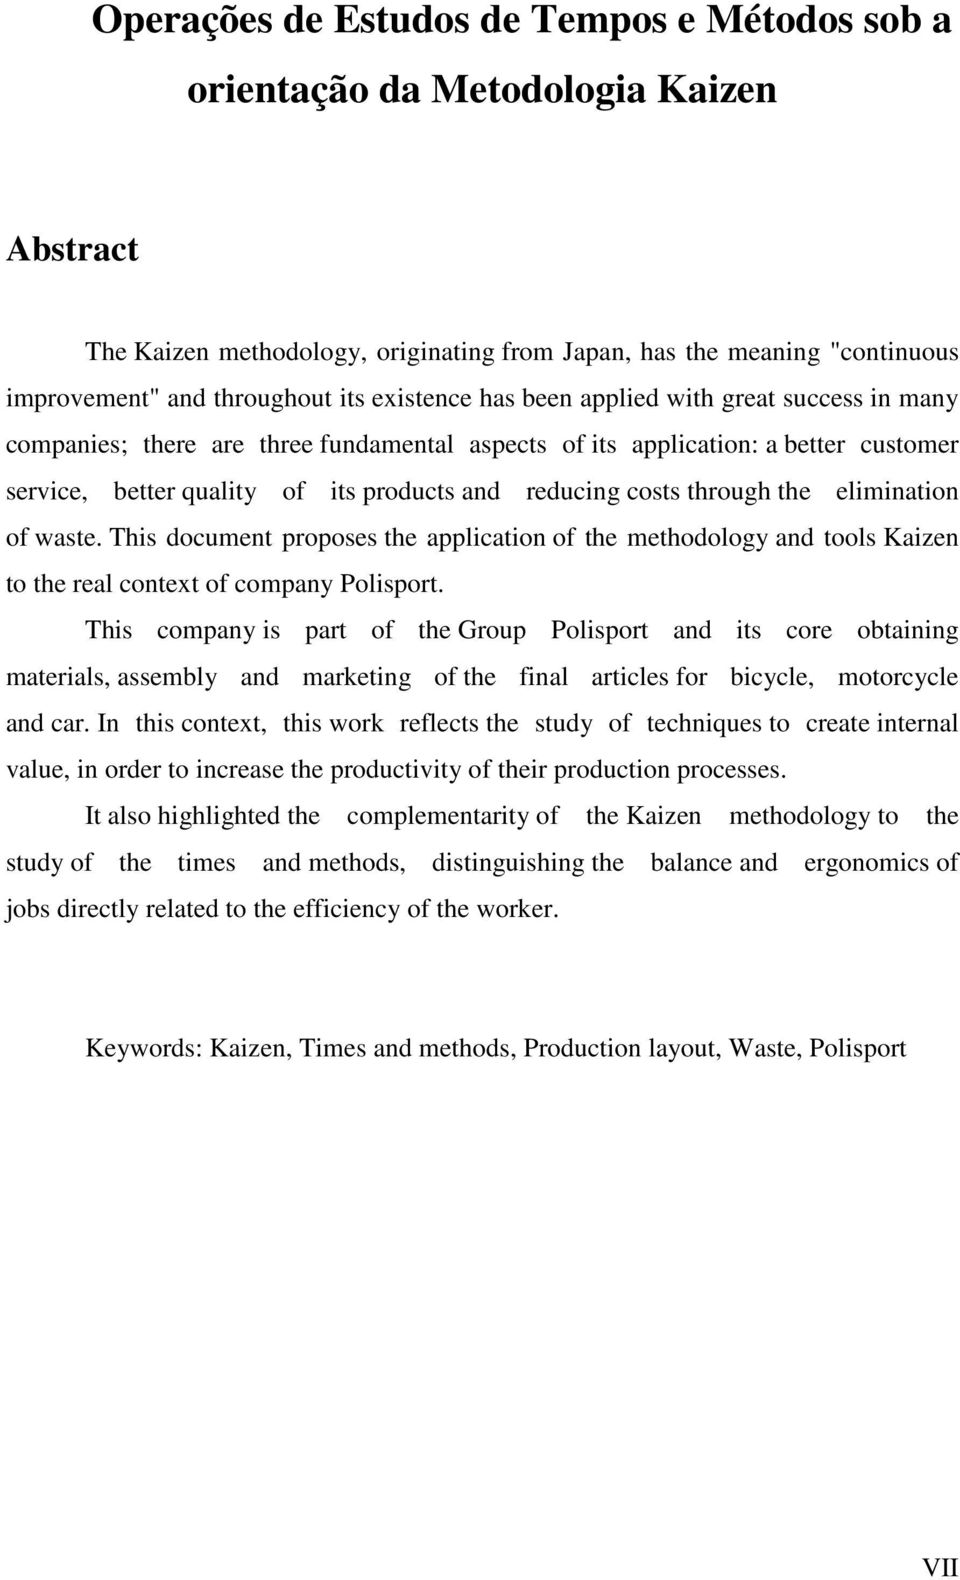 through the elimination of waste. This document proposes the application of the methodology and tools Kaizen to the real context of company Polisport.